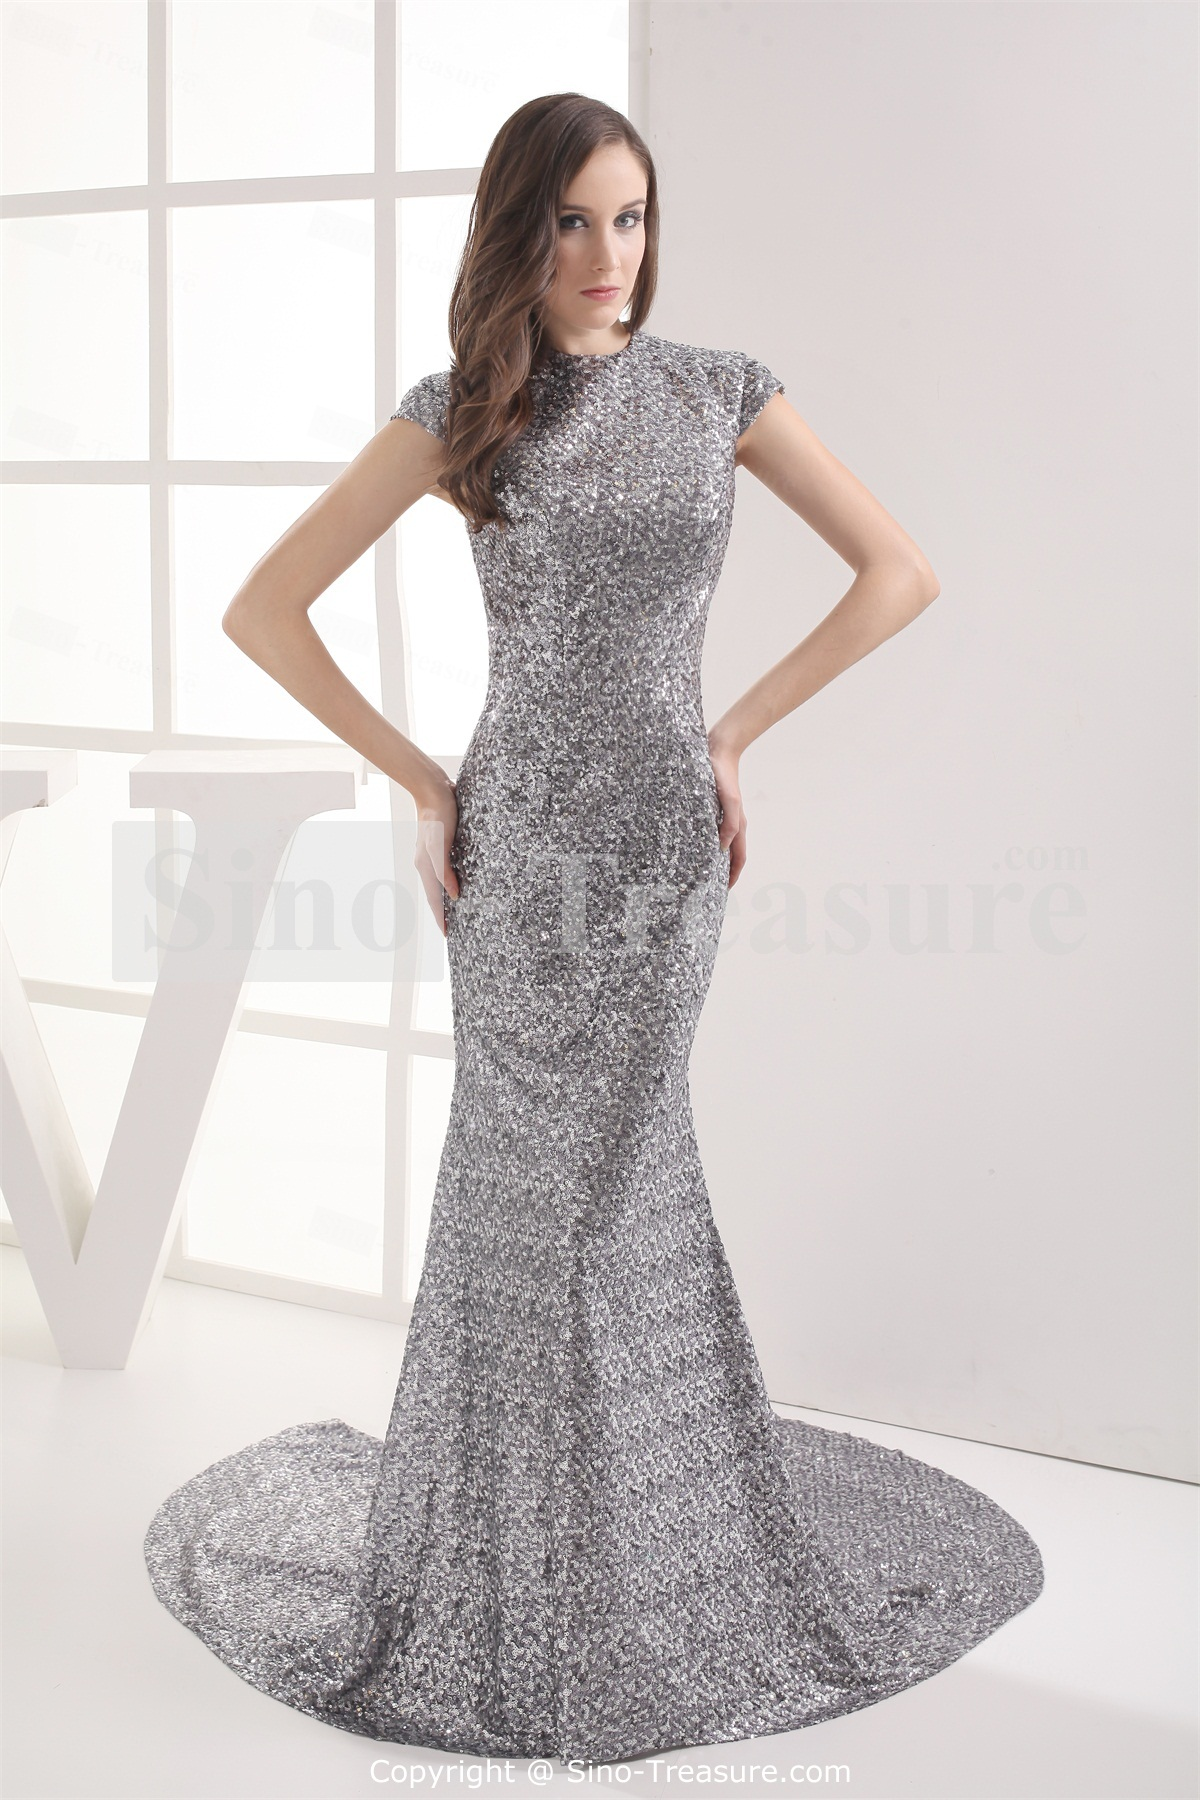 silver wedding dresses Sleeveless Spring Hourglass Brush Train Split Silver Sequins Dresses 00 Be Radiant In Affordable Wedding Dresses